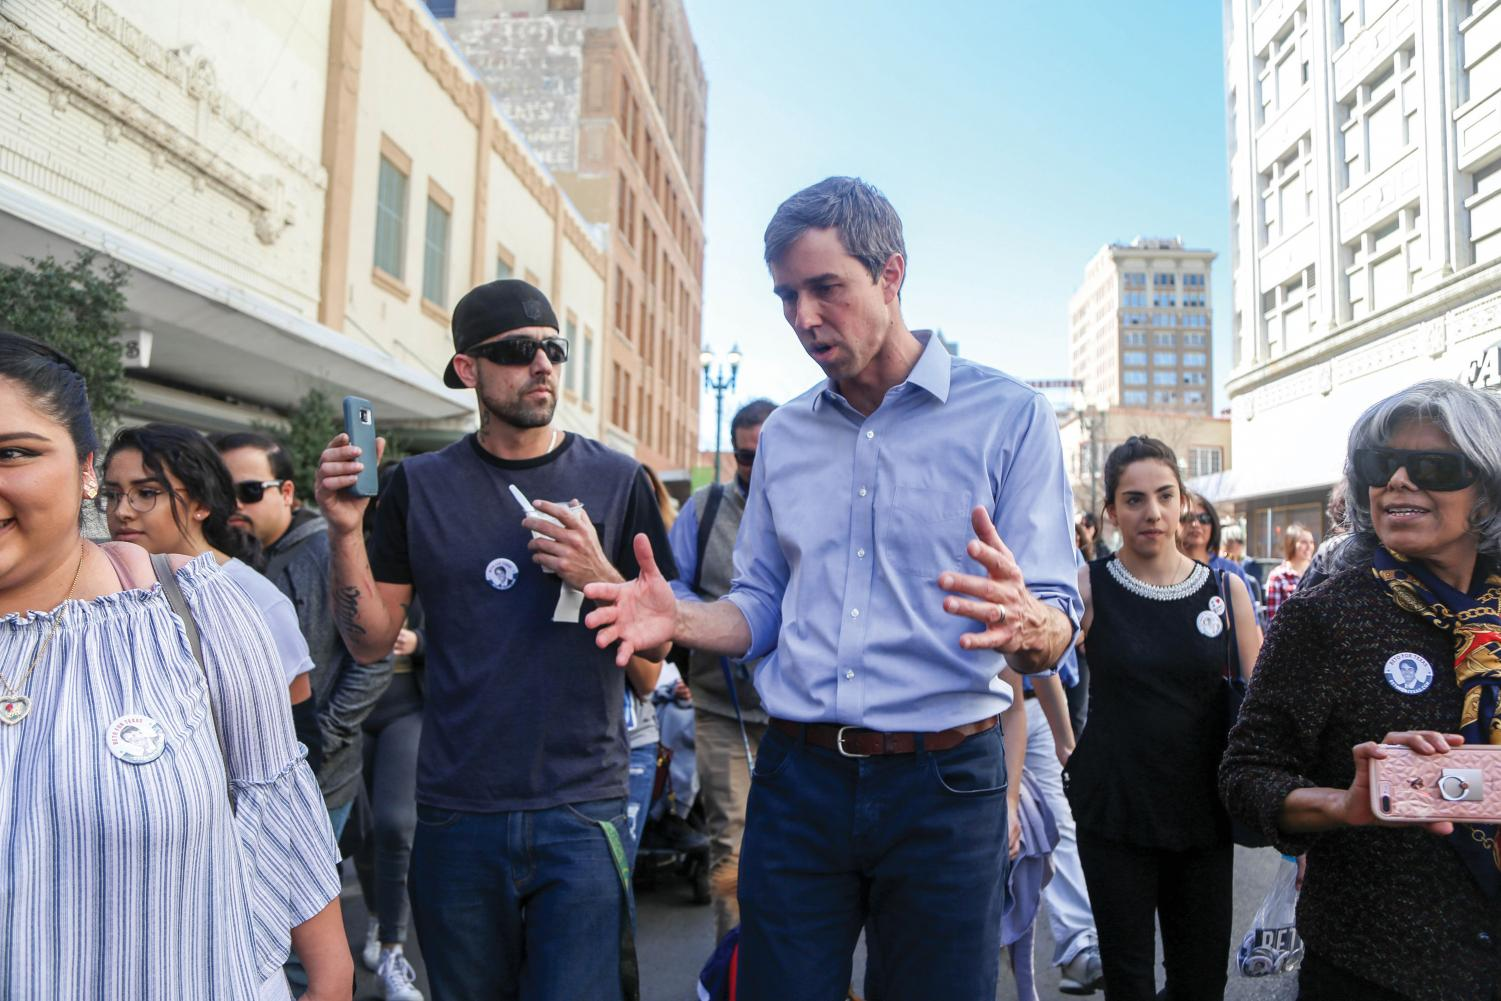 Rafael (Ted) Cruz justifies mocking Robert (Beto) O'Rourke's name